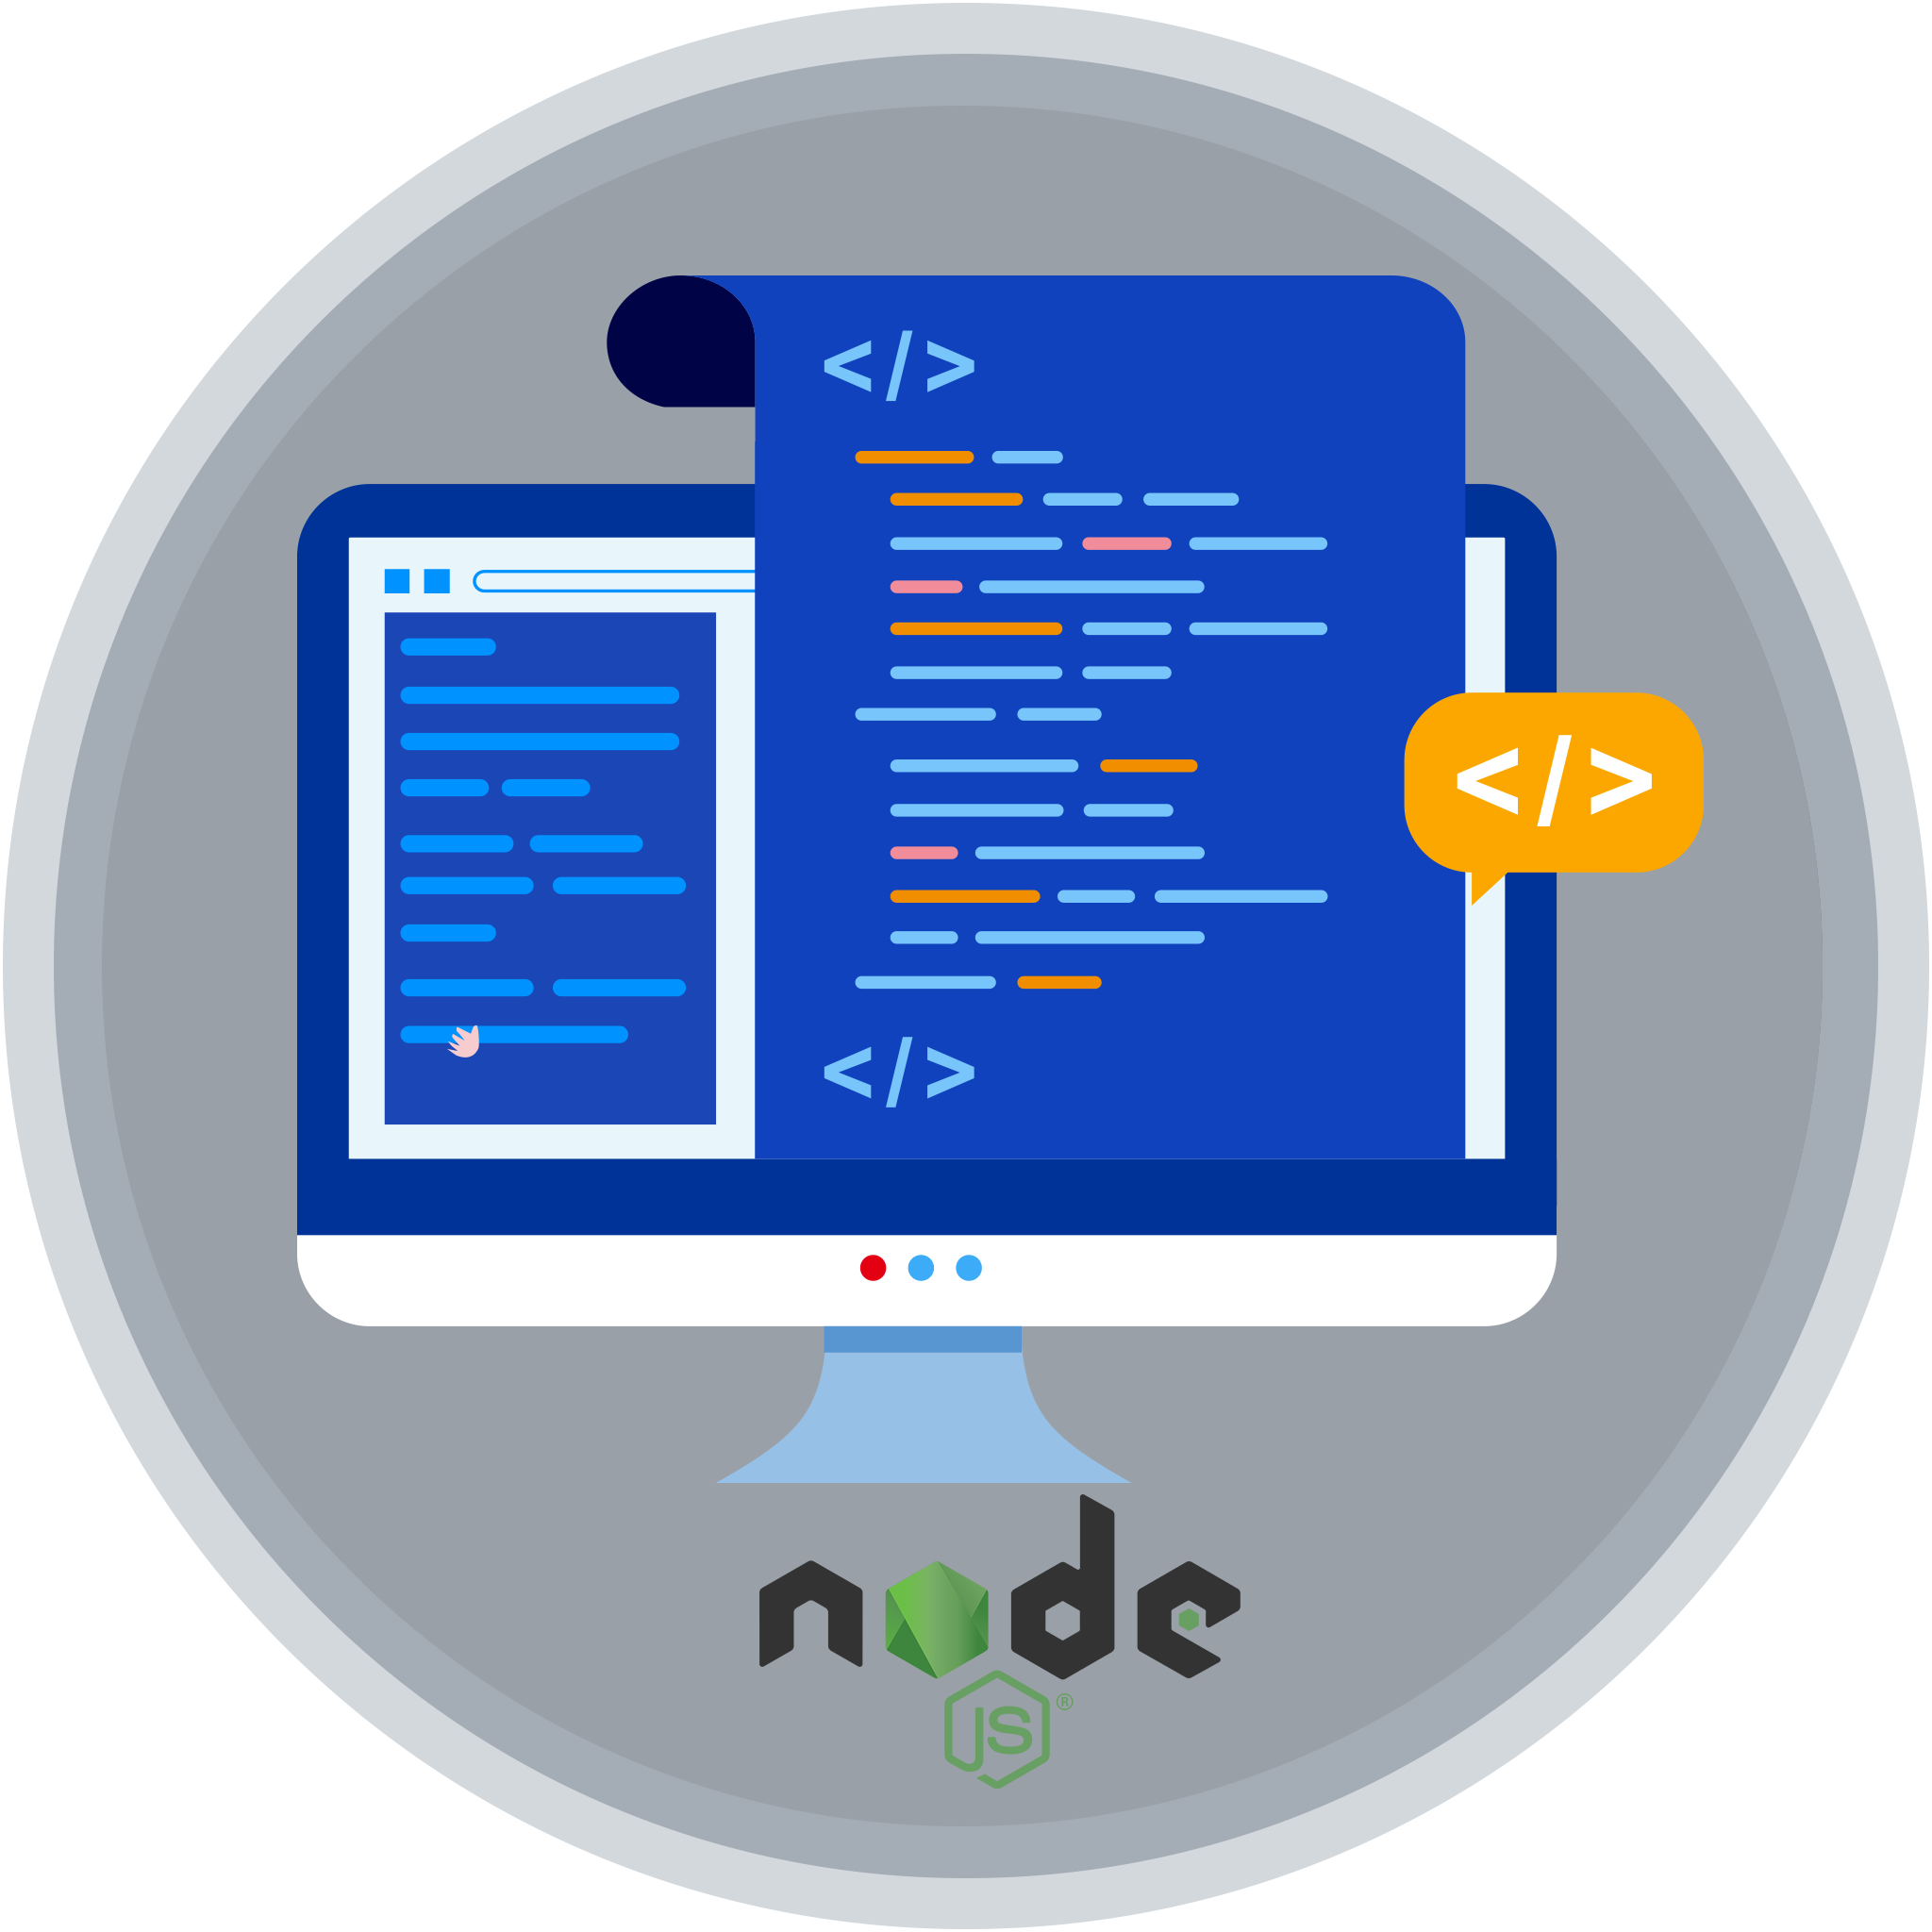 Node development